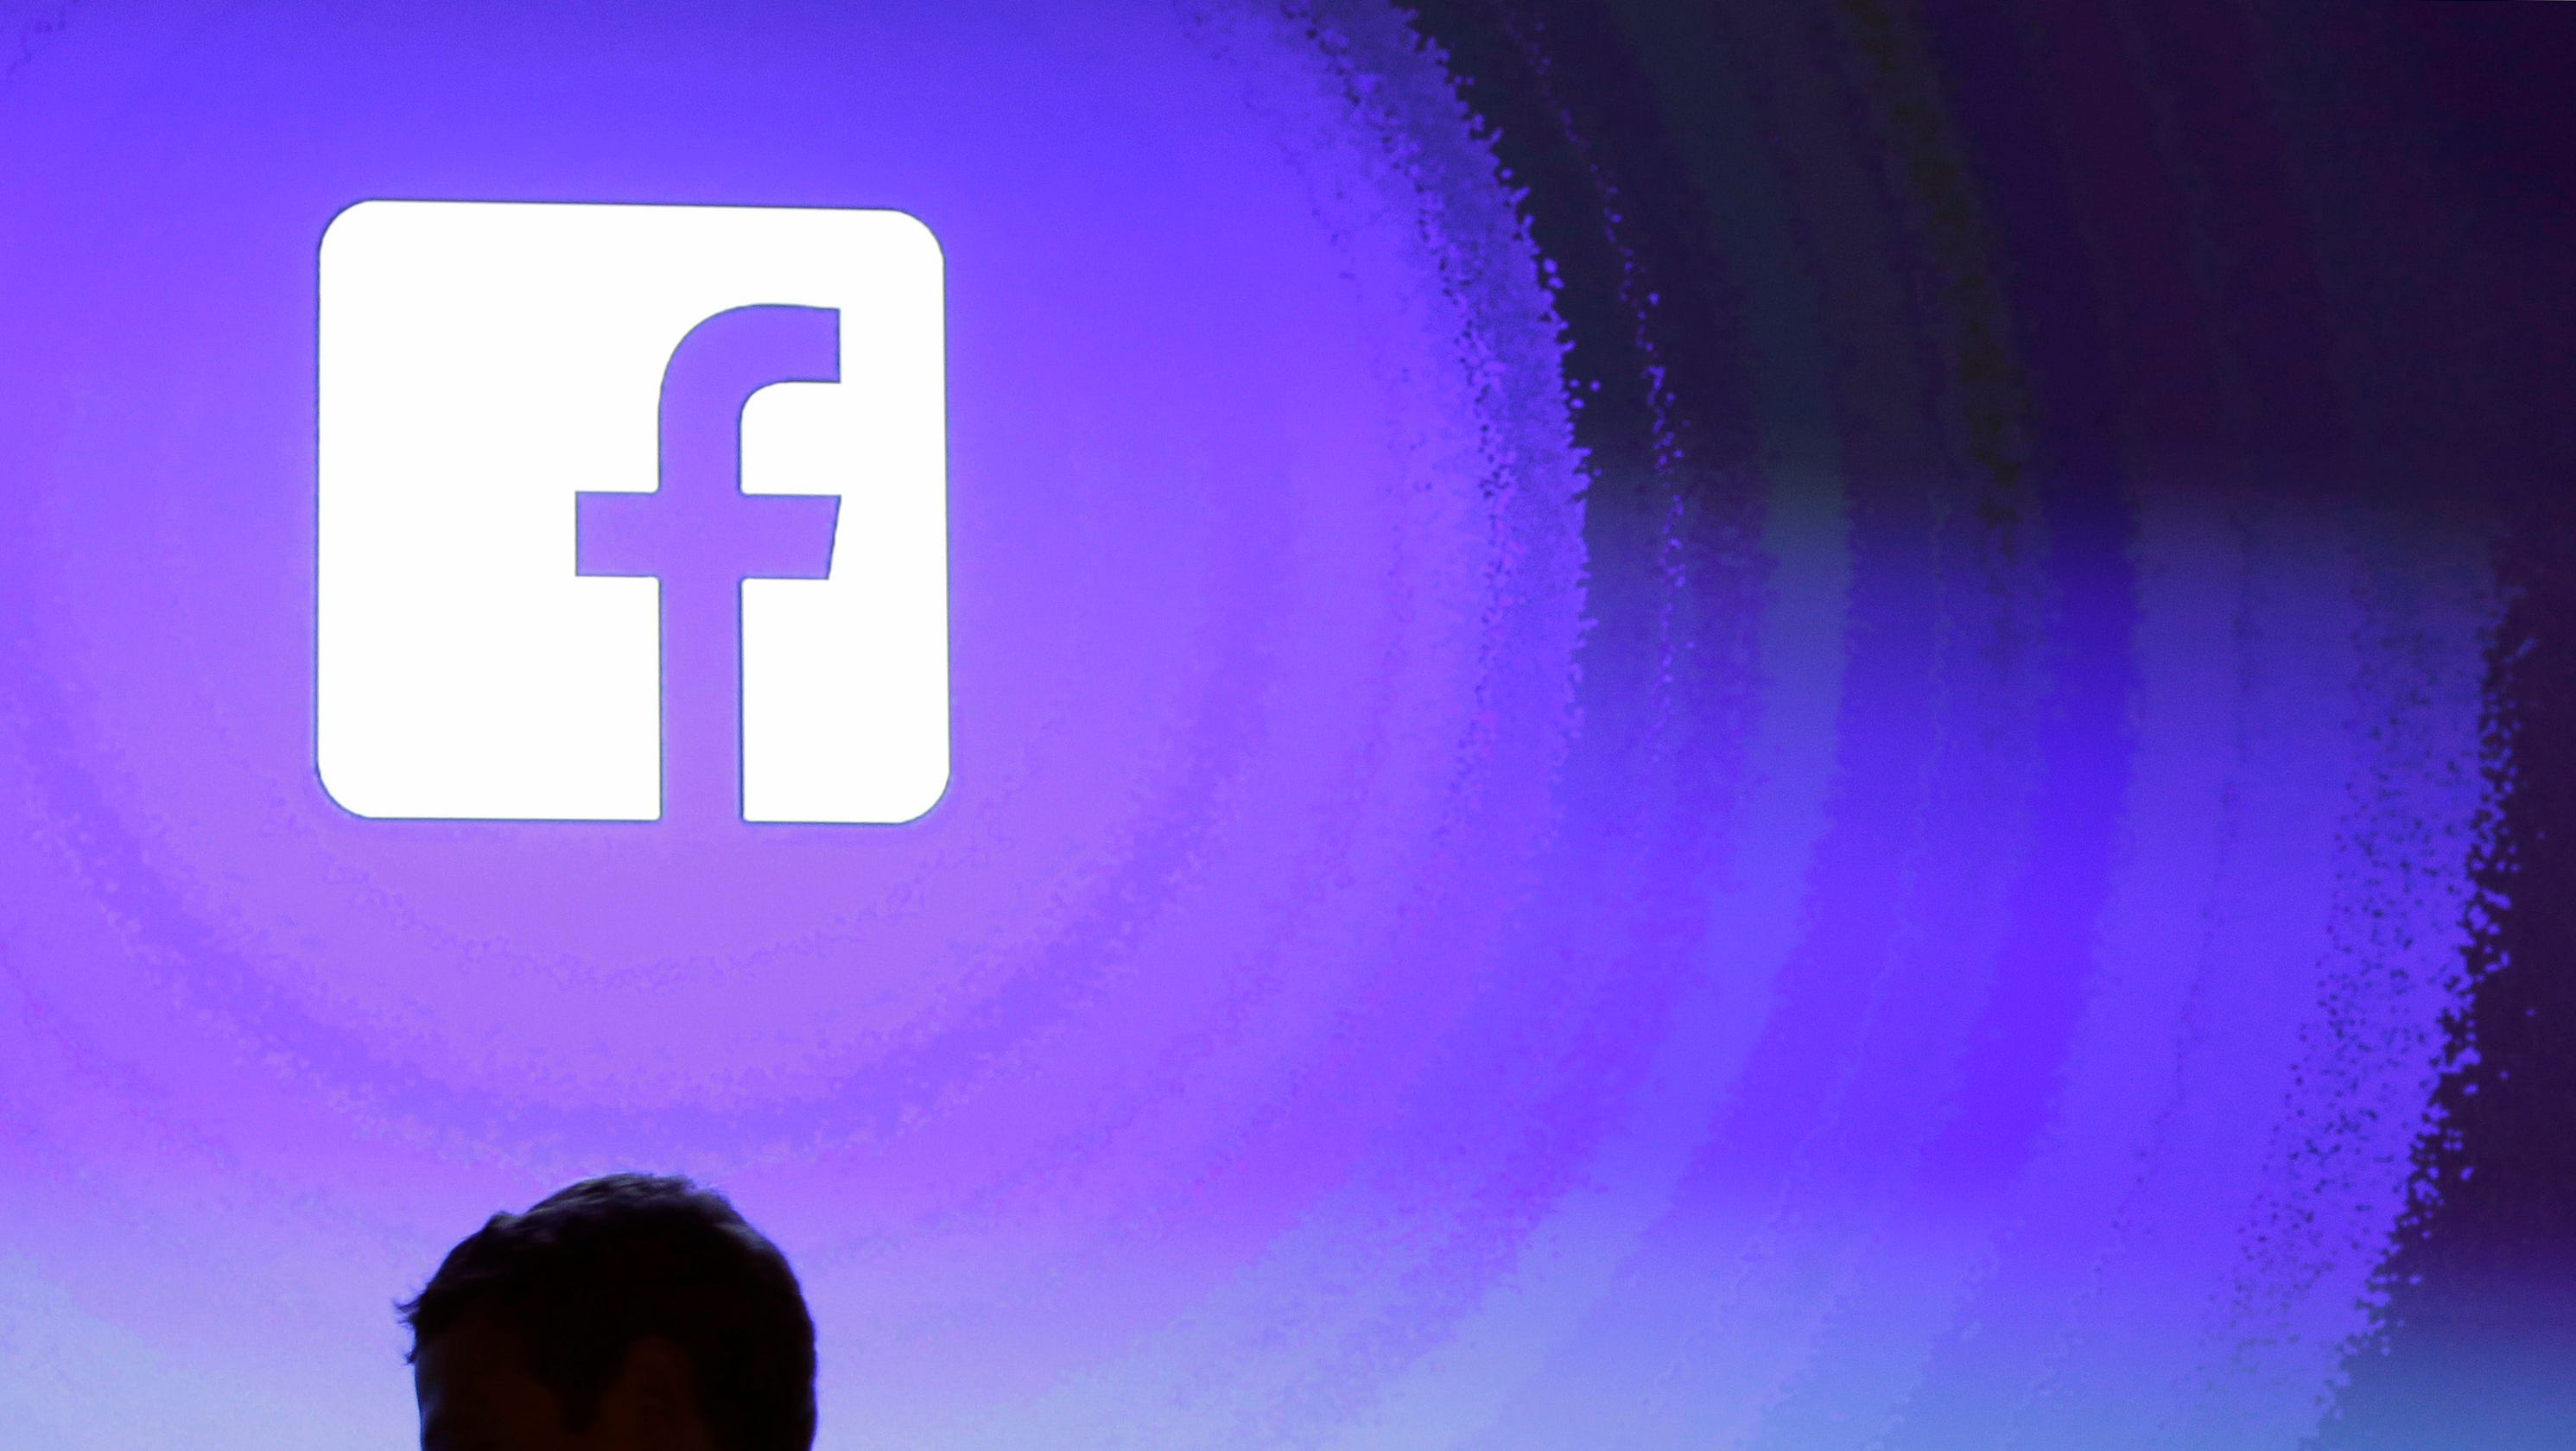 Deadly poison suspected at Facebook facility thumbnail